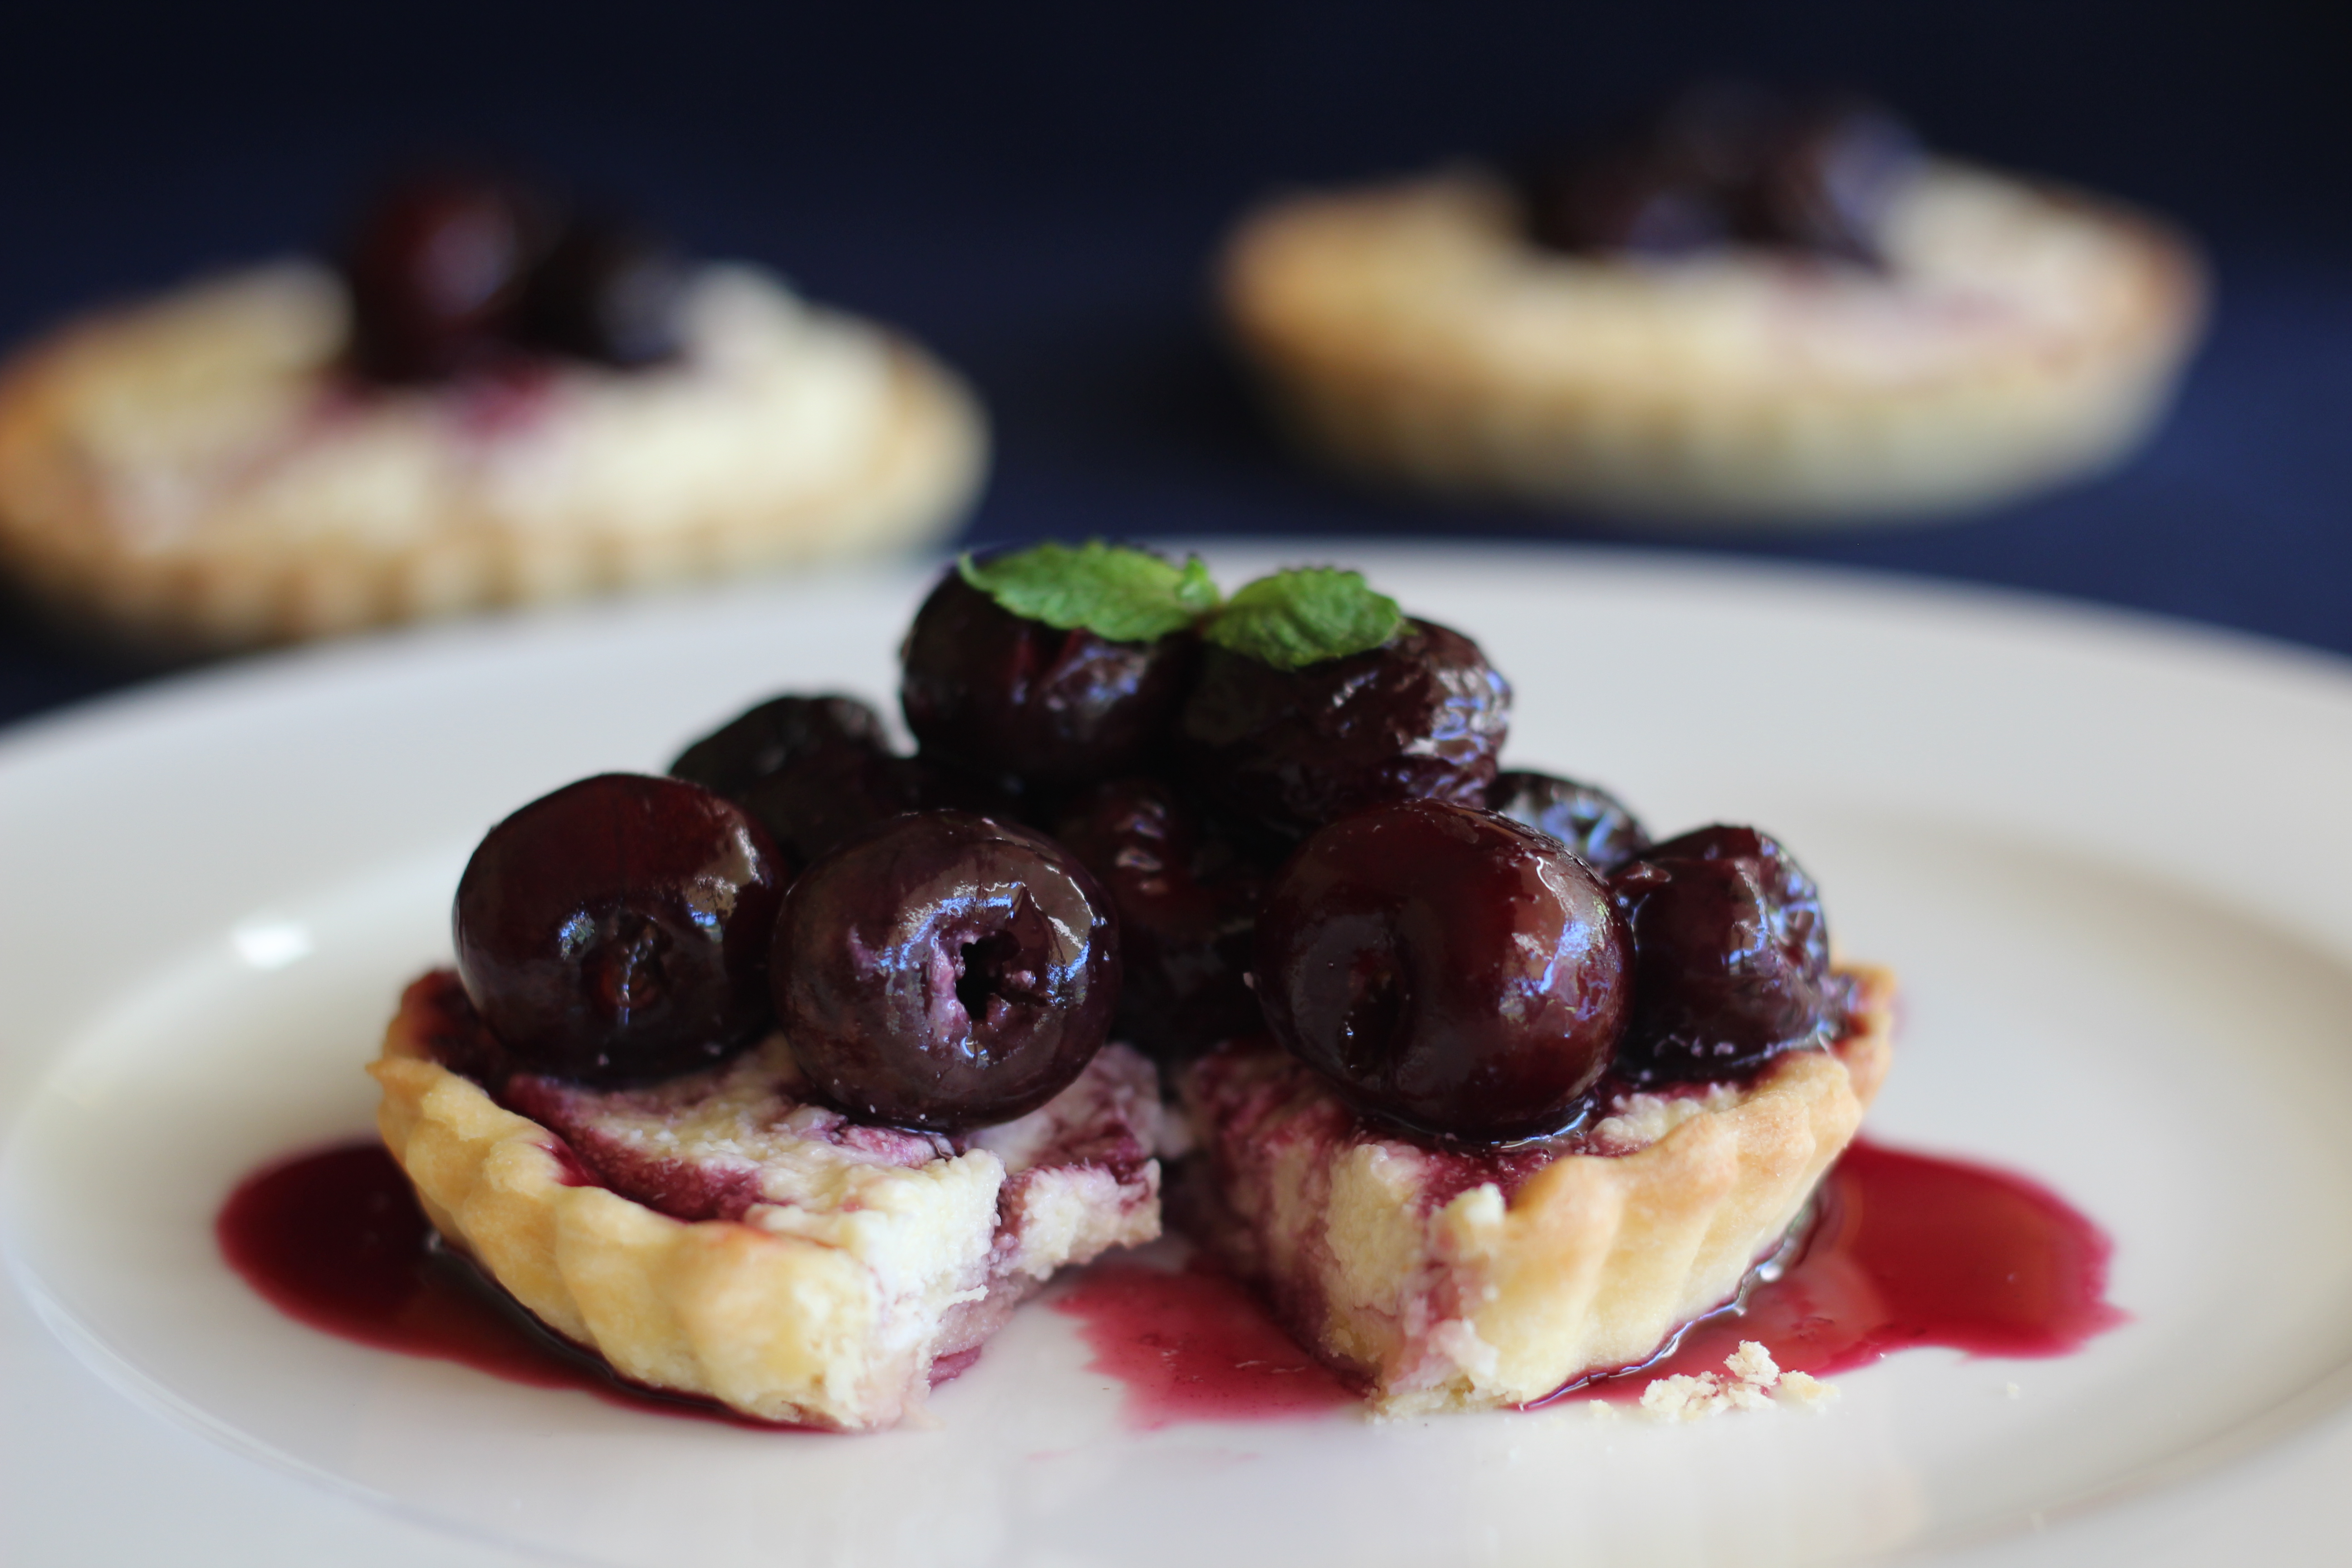 White Chocolate Tart with Cherries in Red Wine Sauce | G'day Soufflé